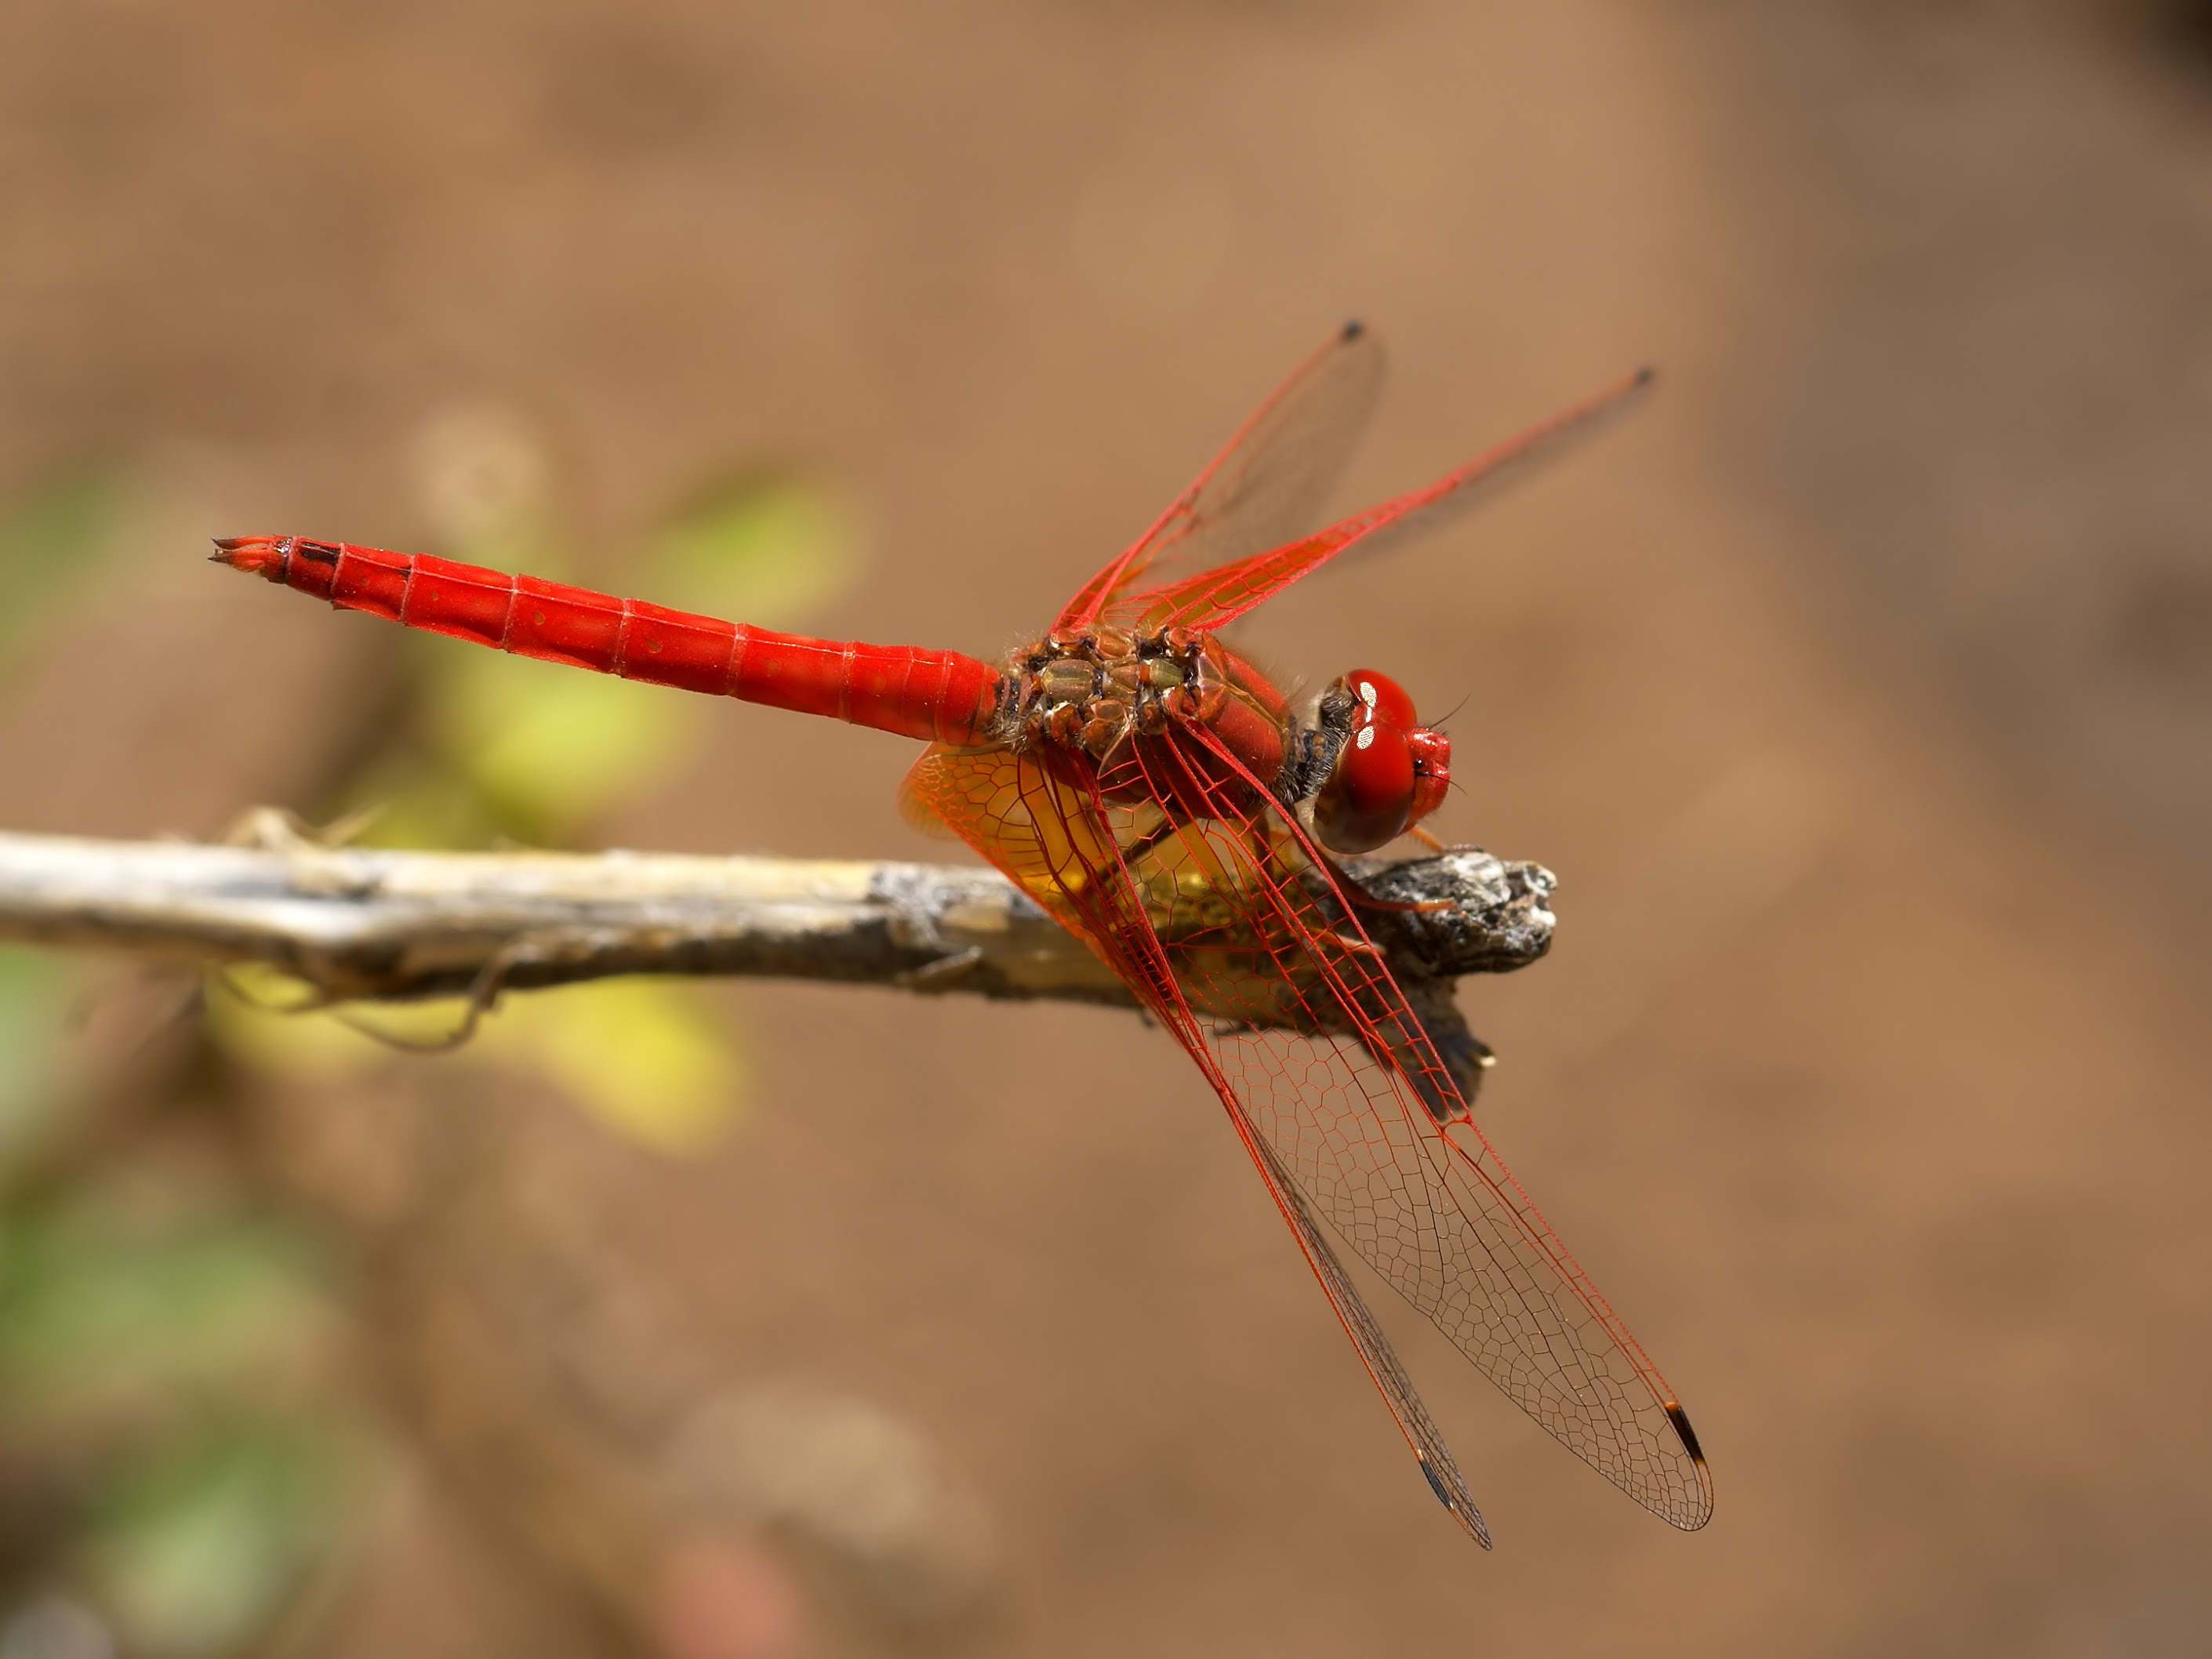 http://upload.wikimedia.org/wikipedia/commons/b/b8/Trithemis_kirbyi.jpg